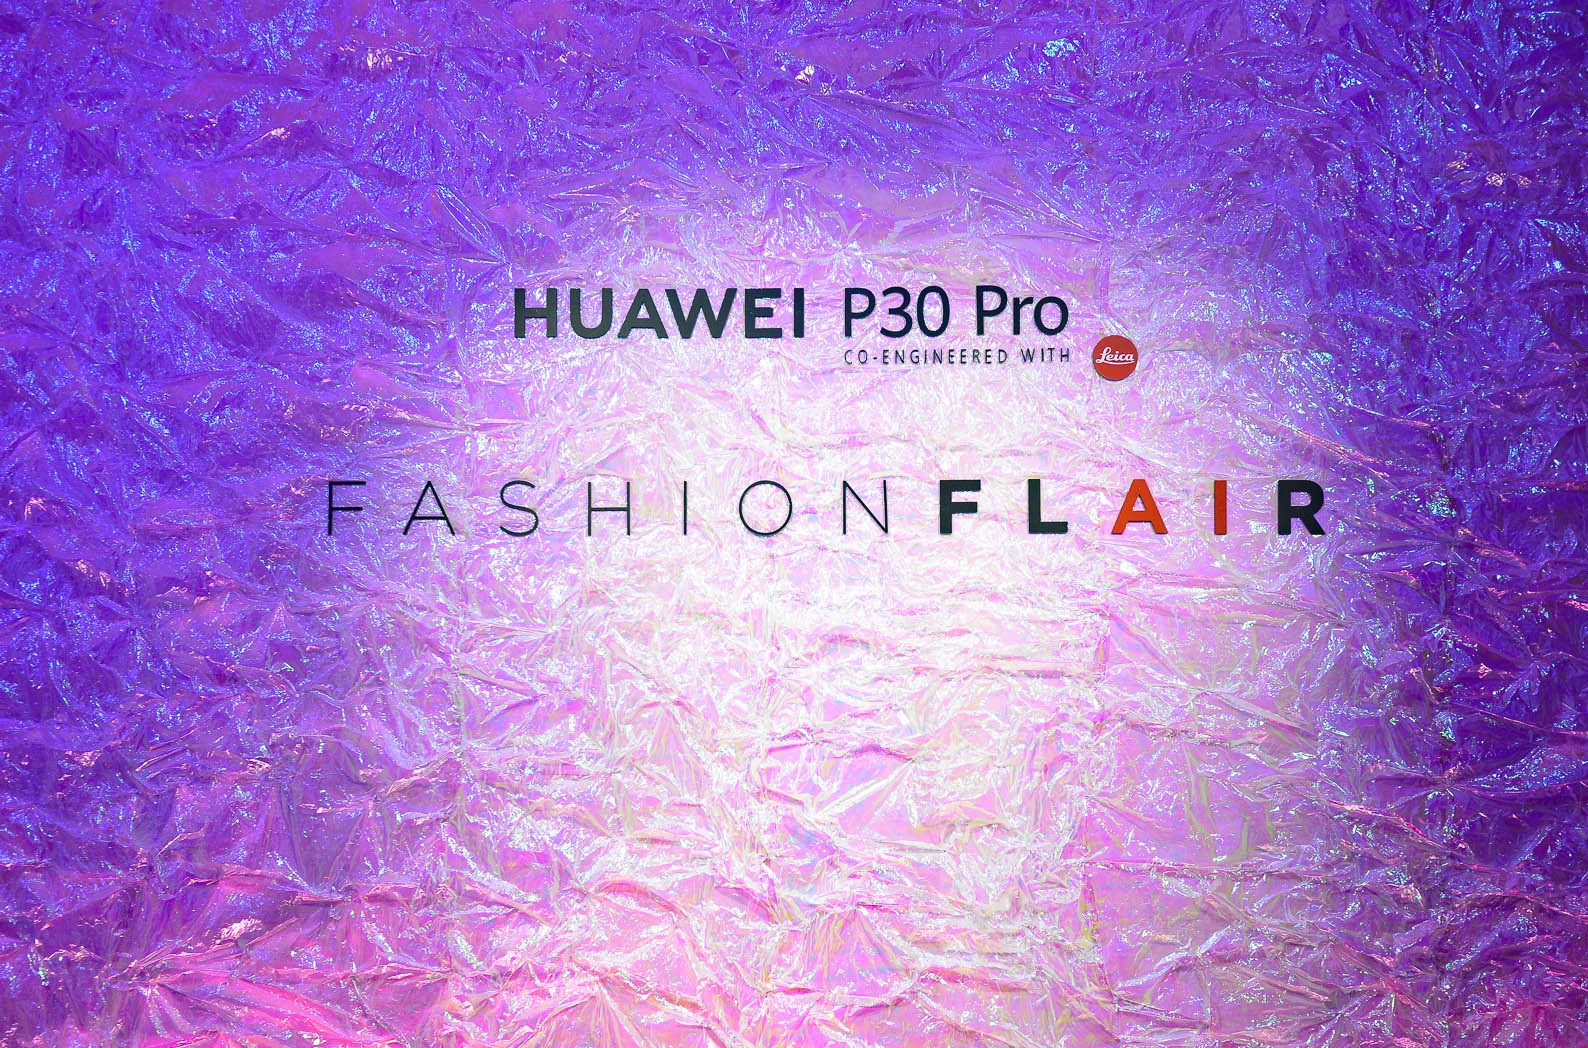 LFM Group per Huawei 2019 - High-tech/Fashion synergy with Annakiki fashion show co-created with the AI of the new HUAWEI P30 PRO